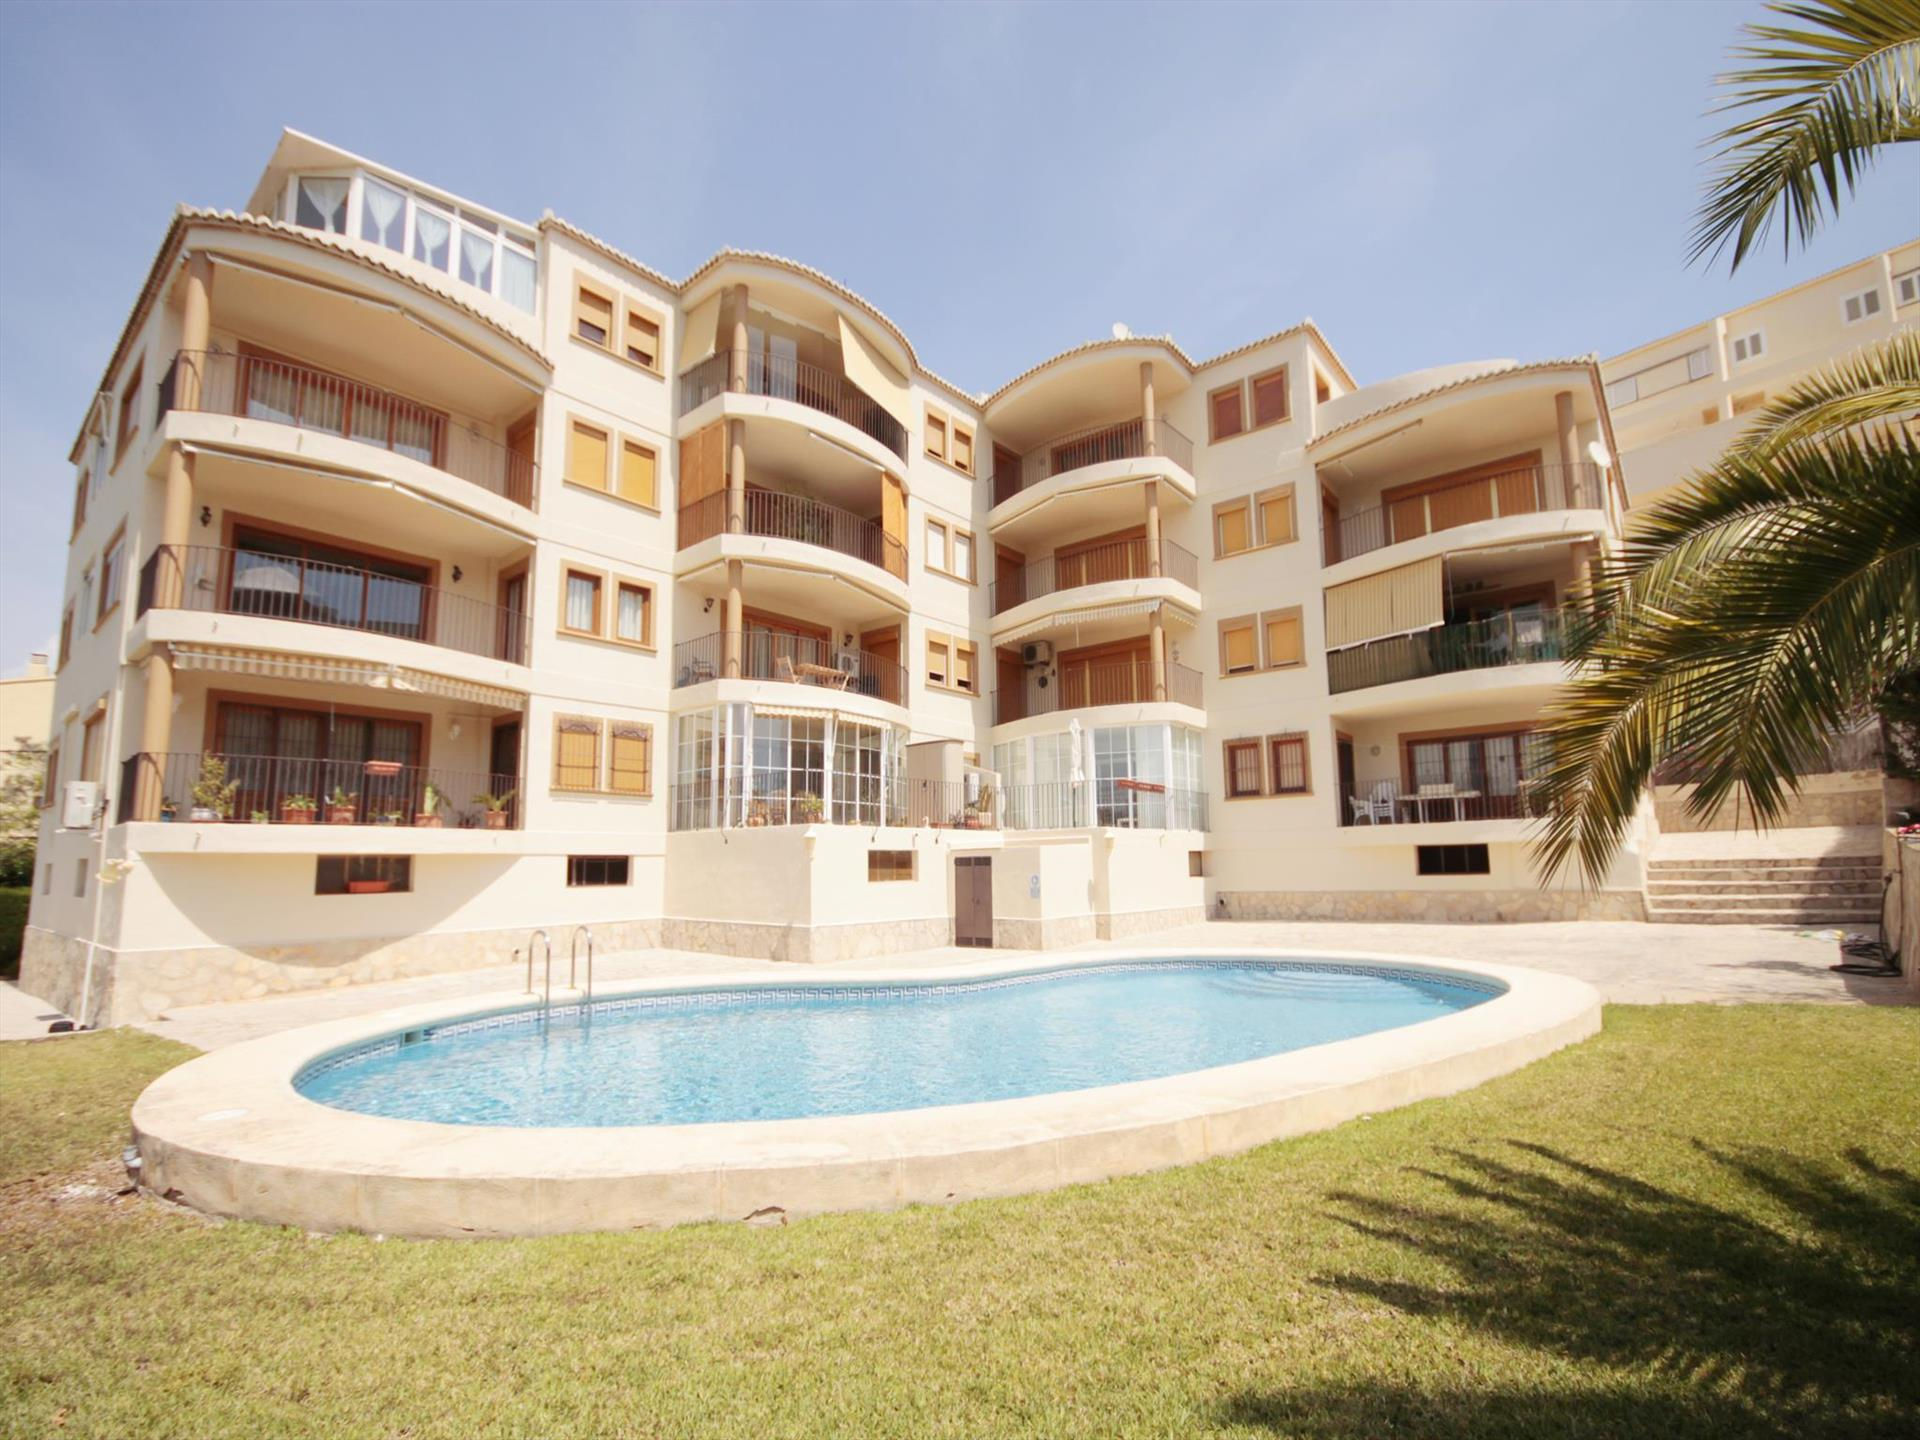 SALADAR 7, Beautiful and comfortable apartment in Javea, on the Costa Blanca, Spain for 7 persons.....